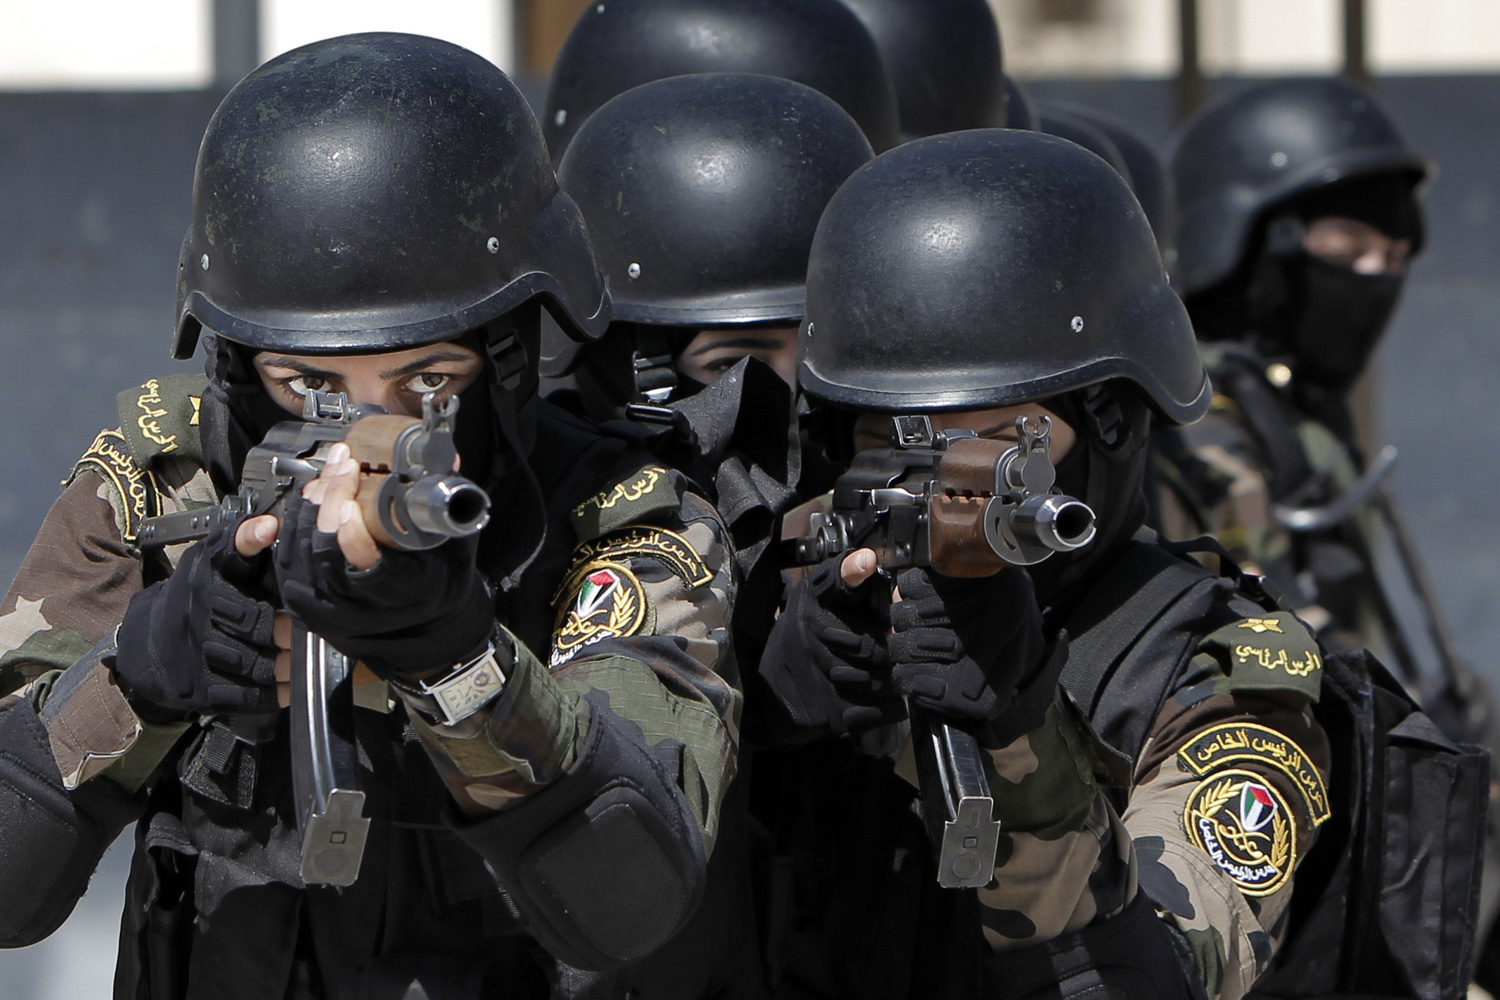 Apr. 6, 2014. Female members of the Palestinian presidential guard take part in a training session in the West Bank city of Jericho.